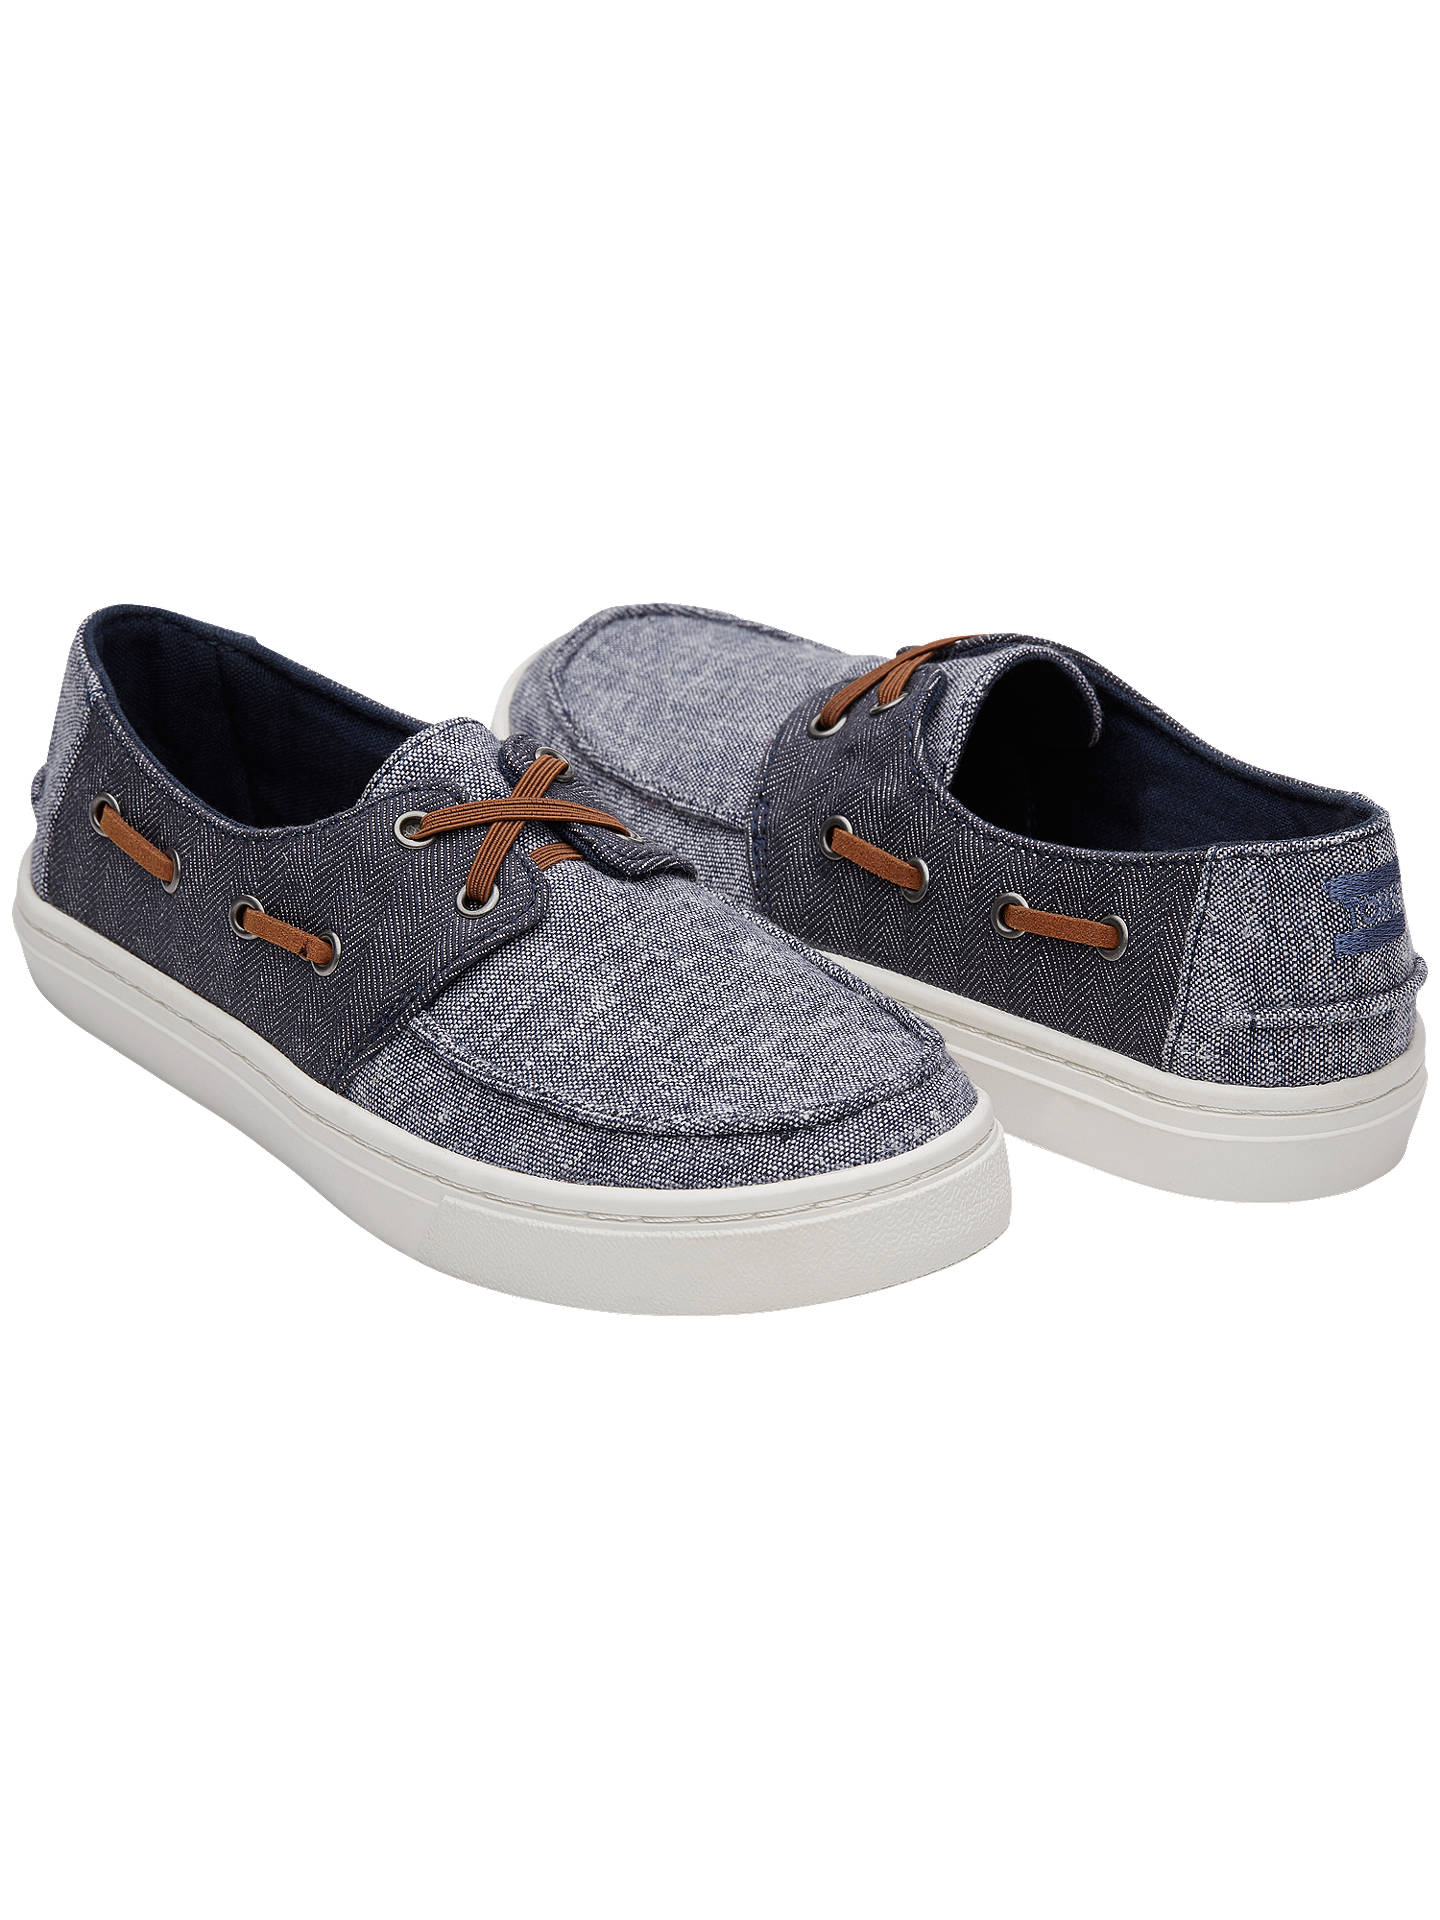 1973579399c Buy TOMS Children s Culver Casual Shoes